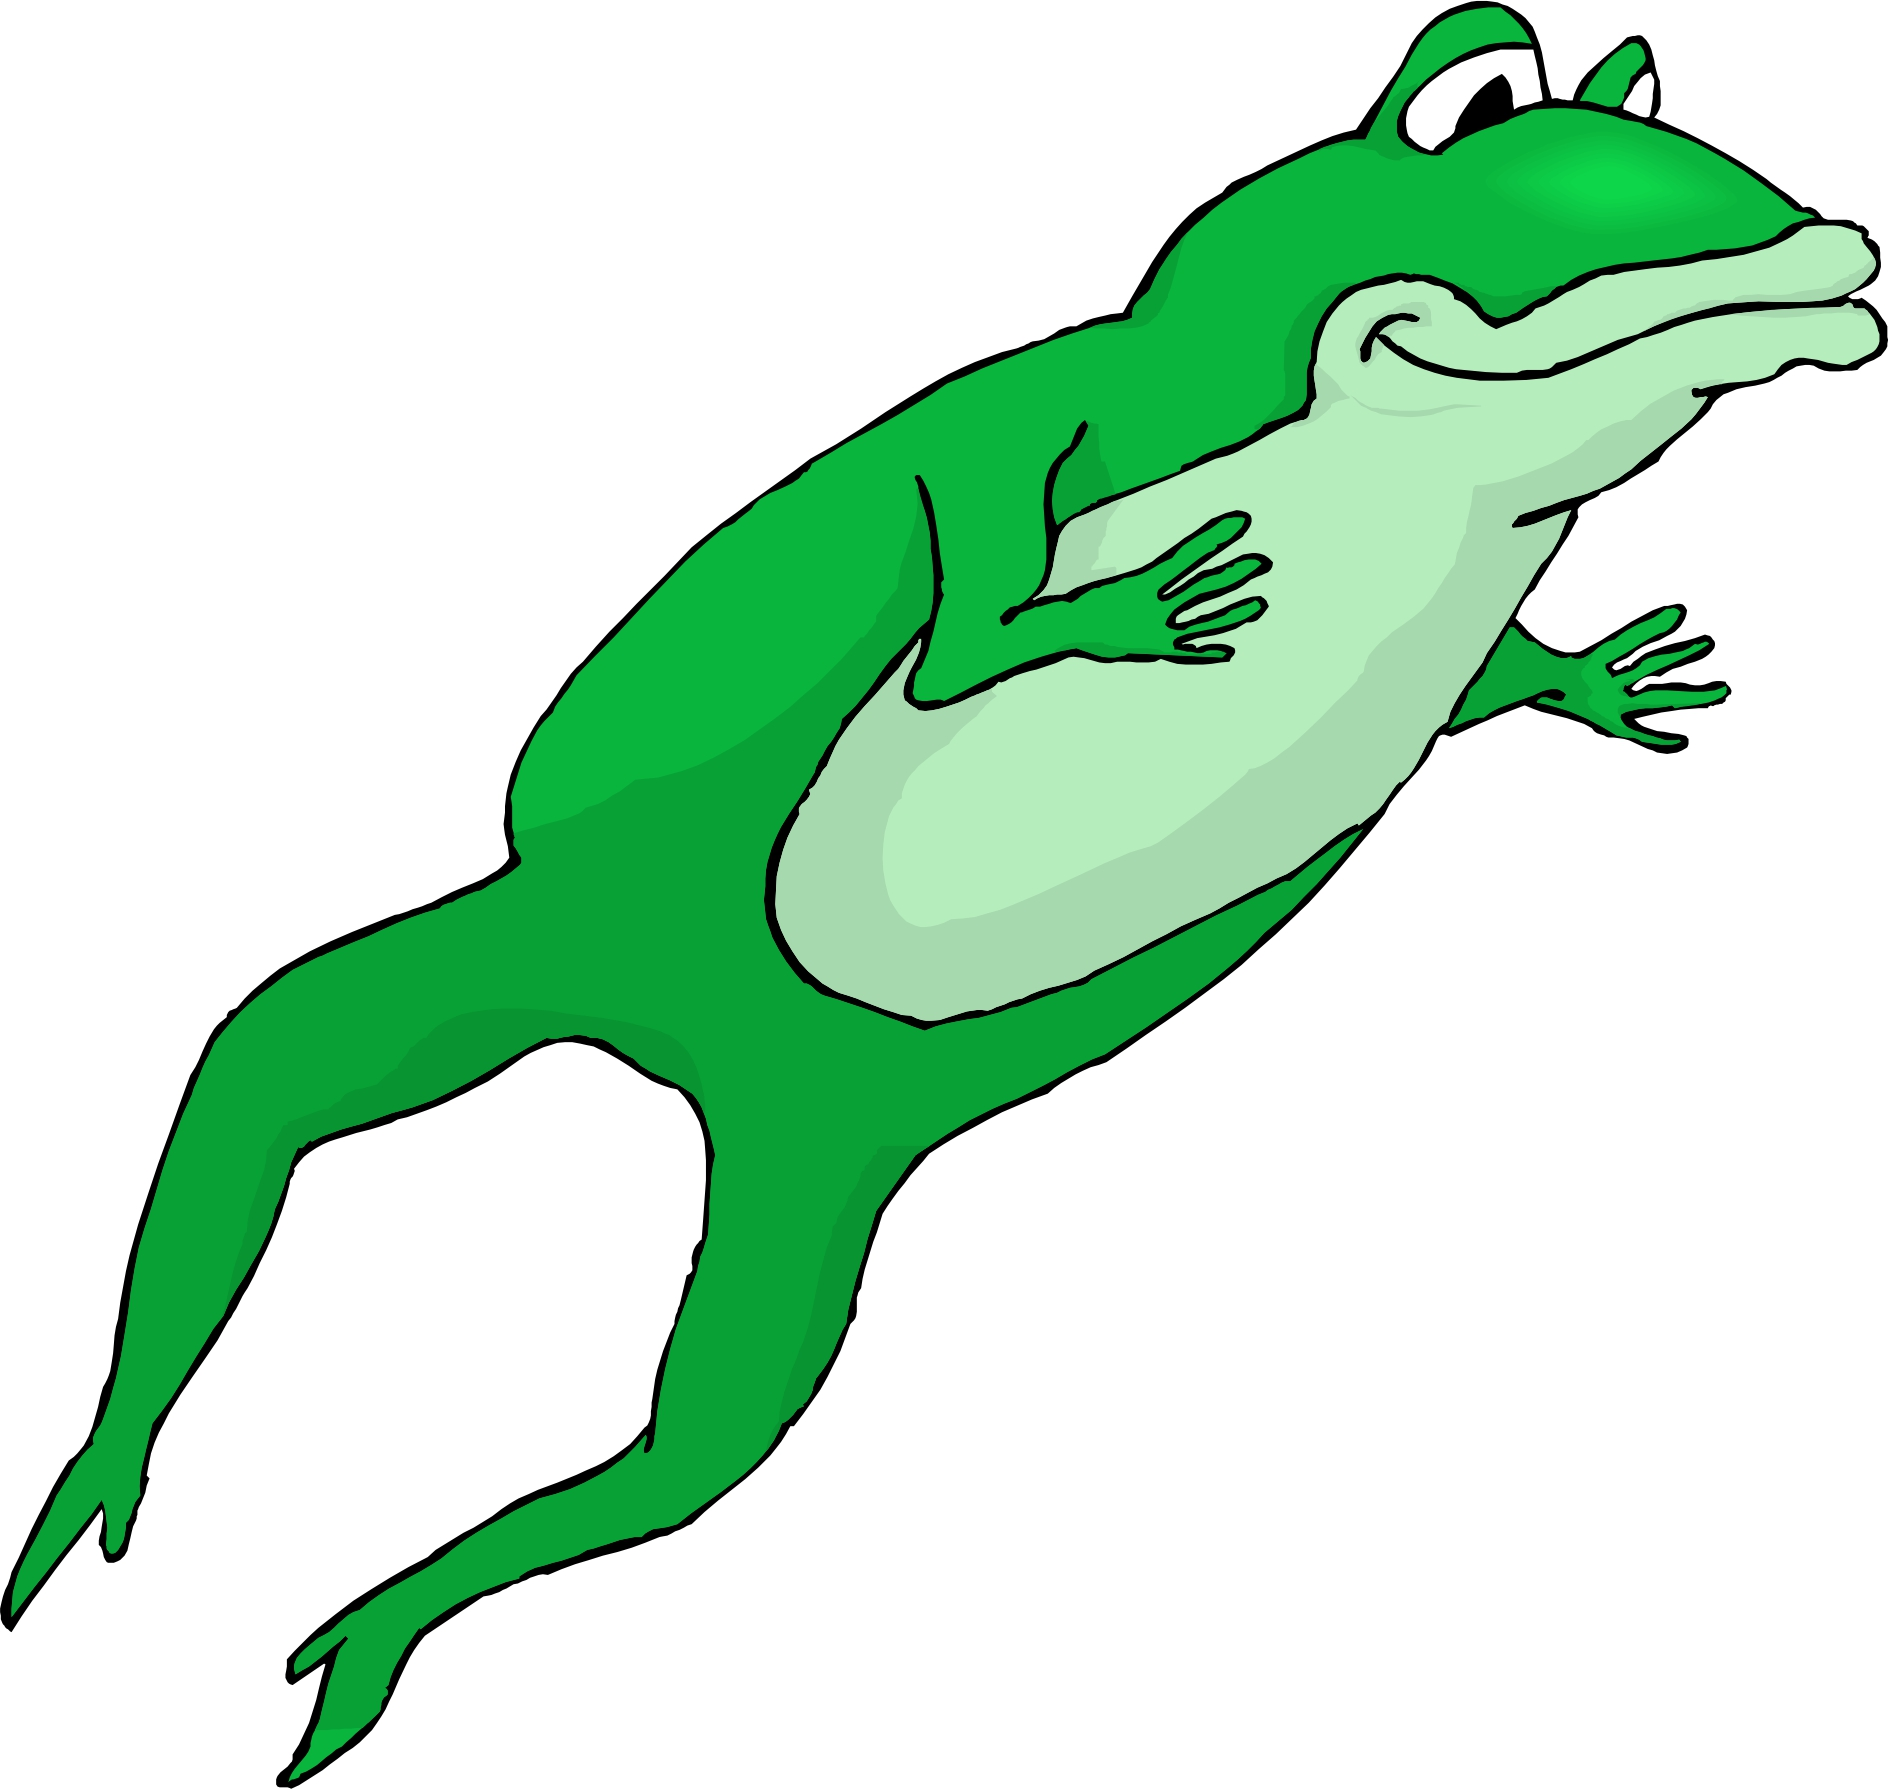 Cartoon Jumping Frog.